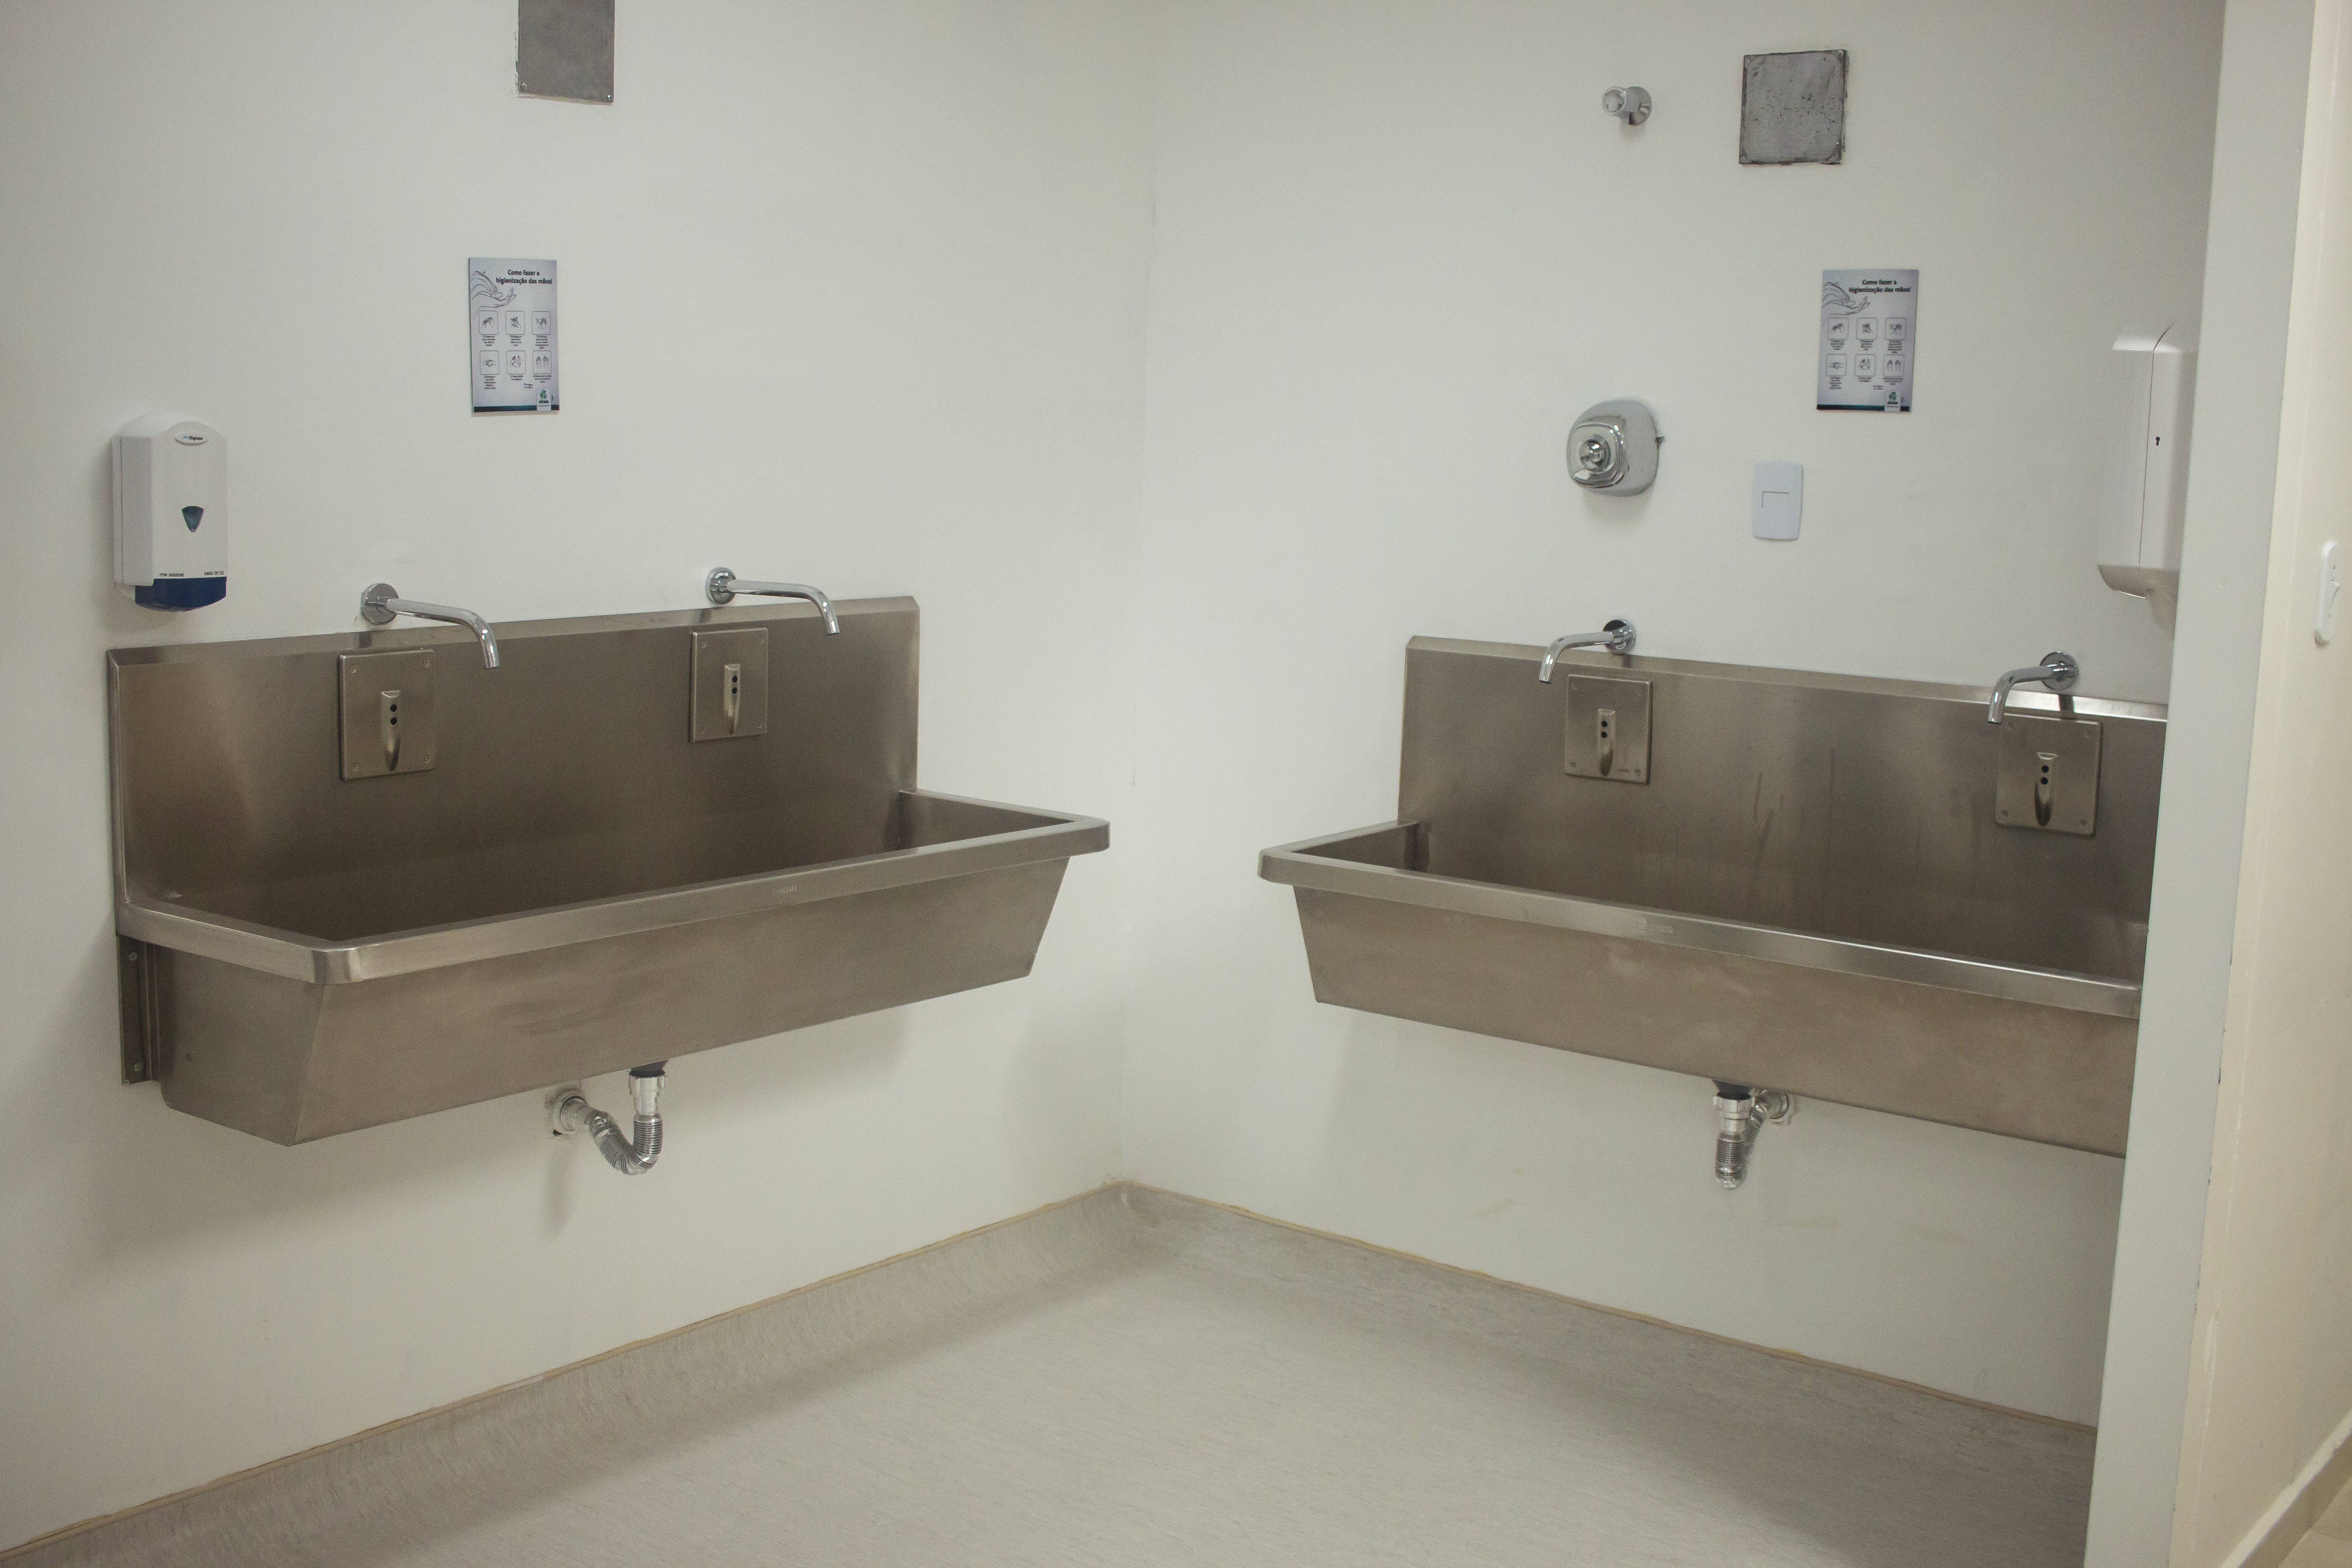 Stainless Steel Sink For Hospital In Use In Brazil